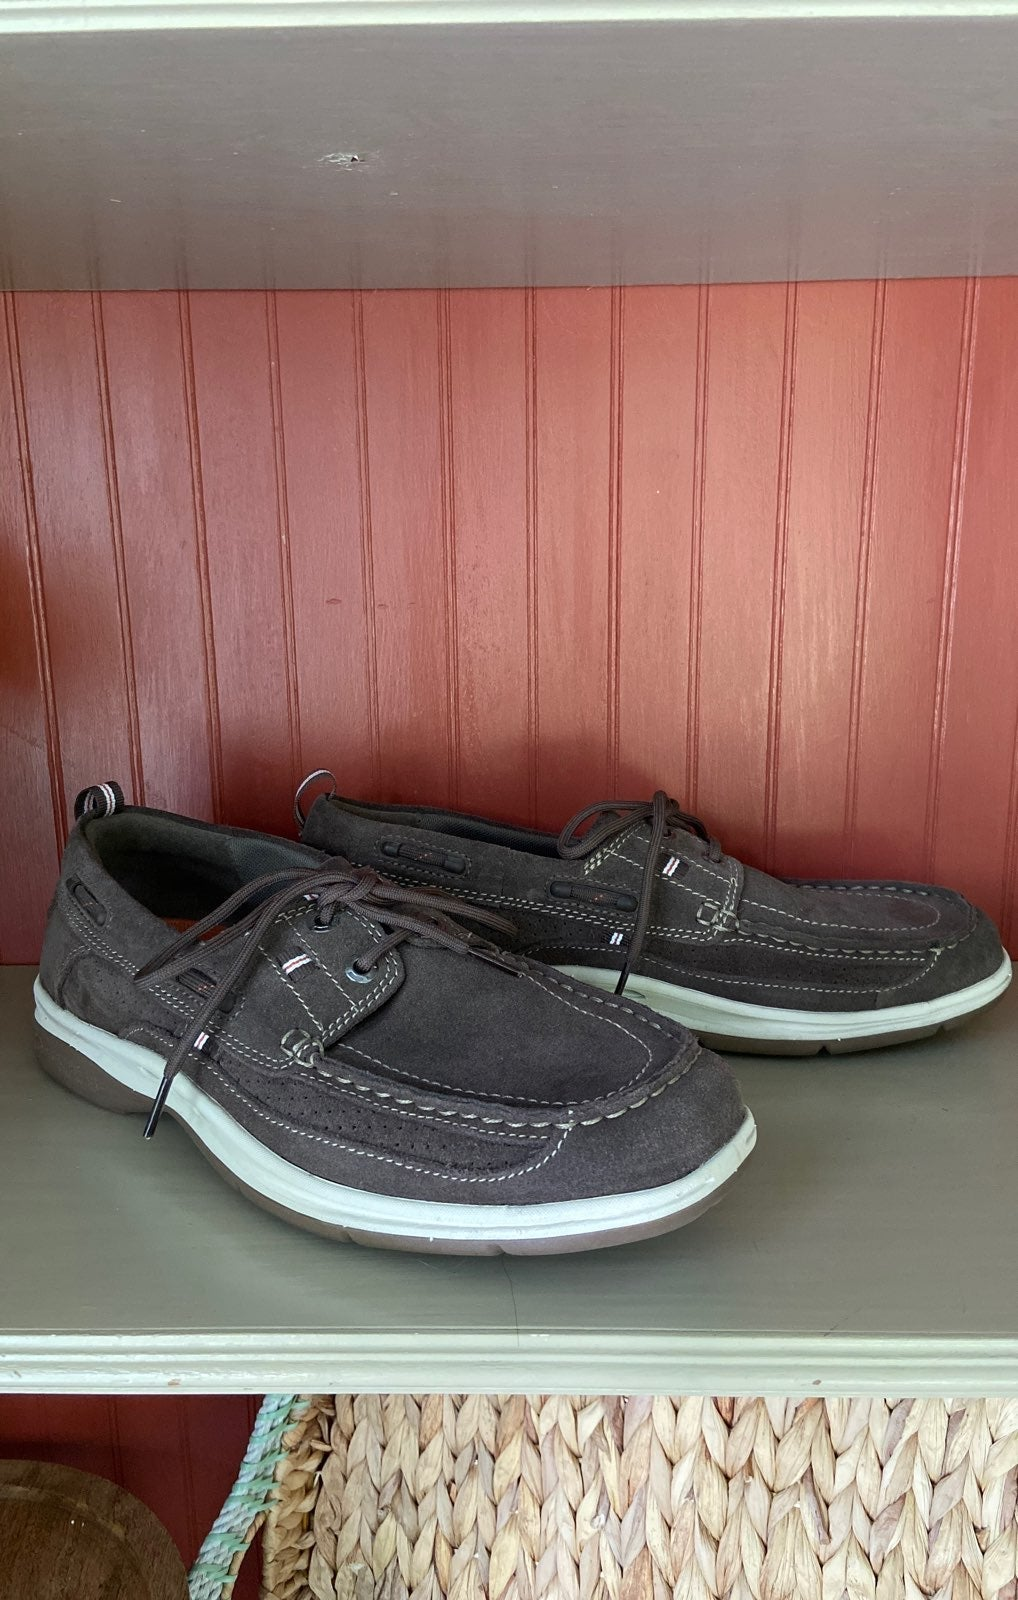 Mens Clarks Leather Casual Slip-On Shoes